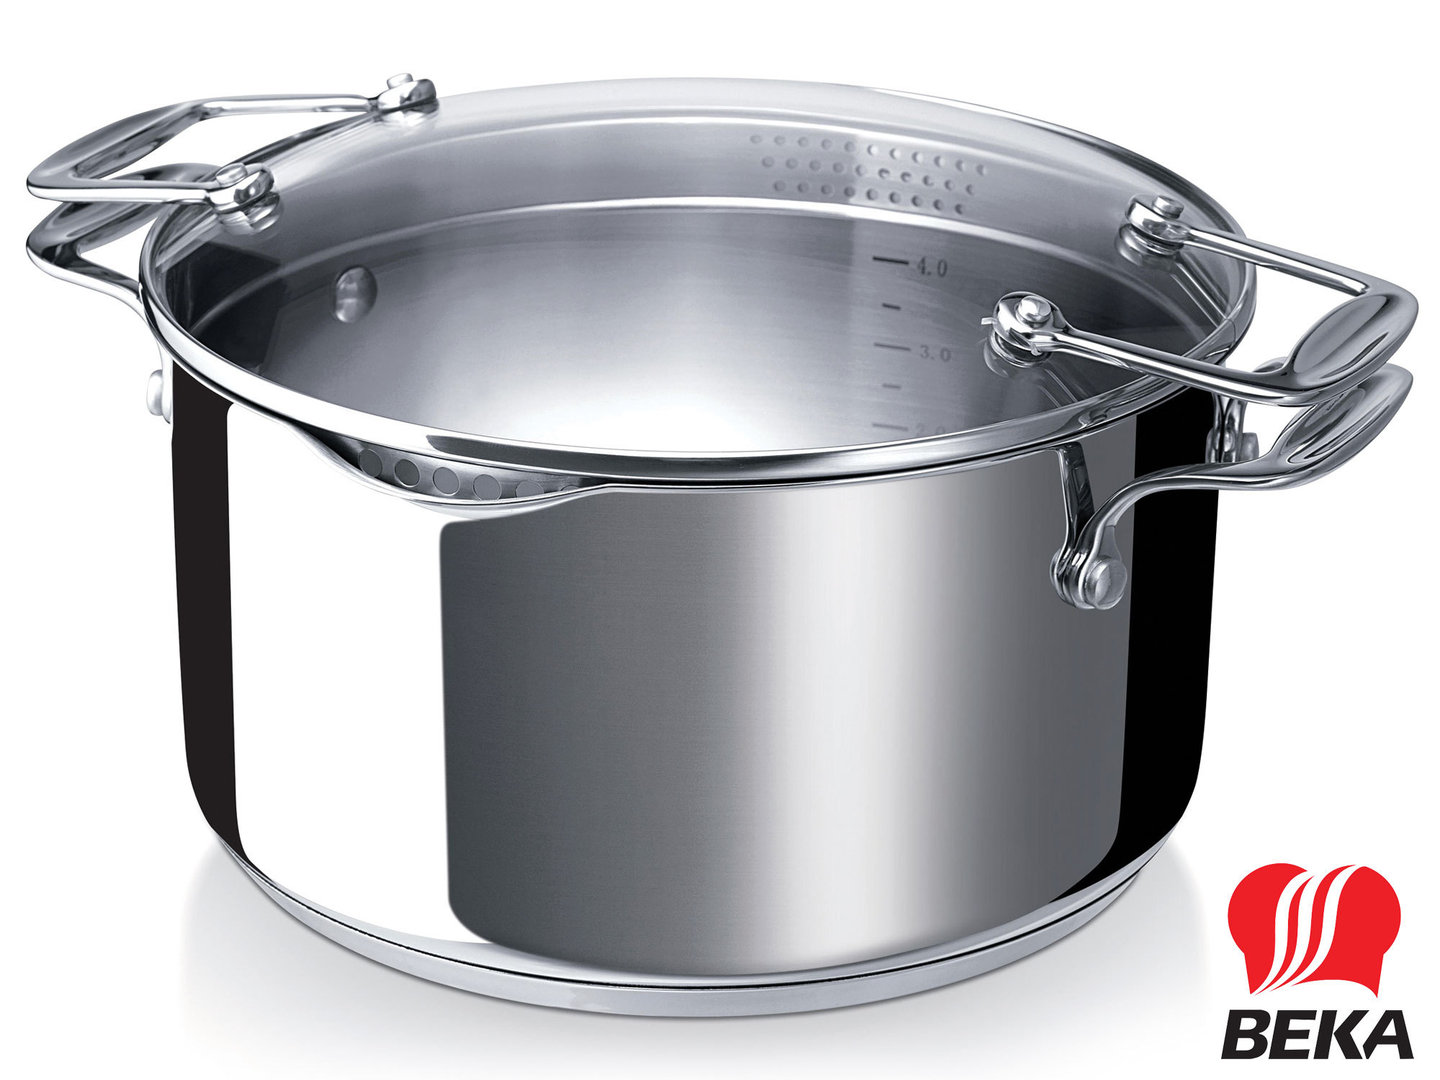 BEKA easy straining casserole CHEF PRATIQUE 24 cm stainless steel induction